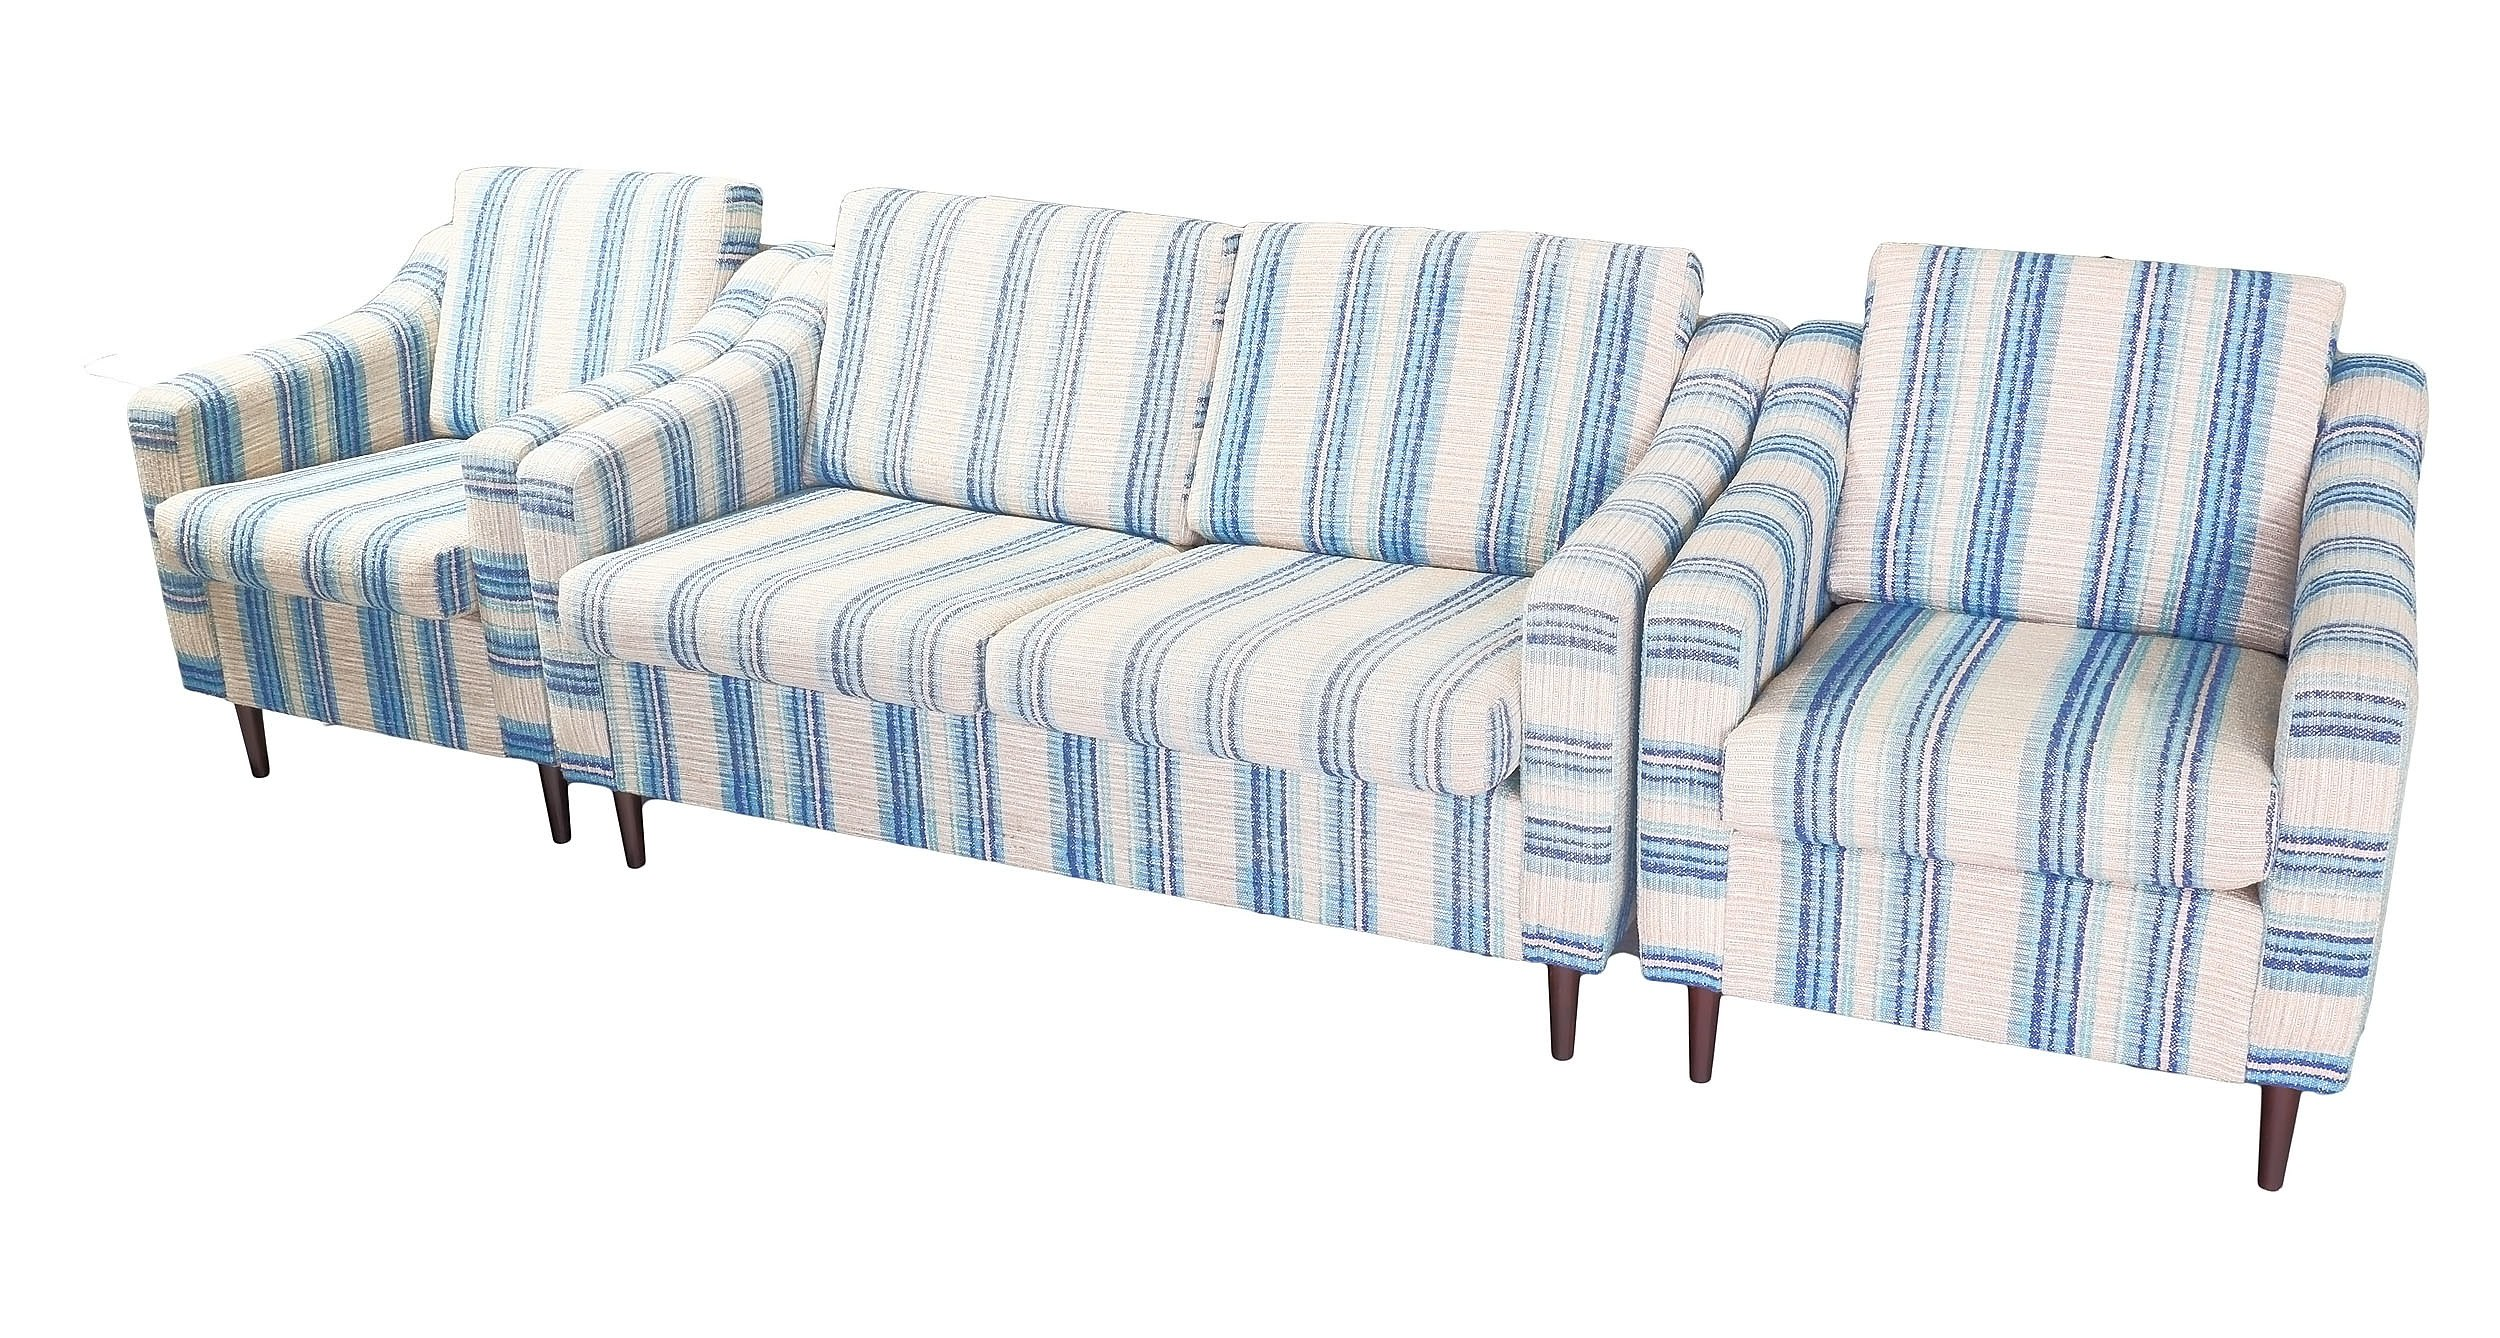 'Parker Three Piece Lounge Suite with Blue and Cream Striped Upholstery'